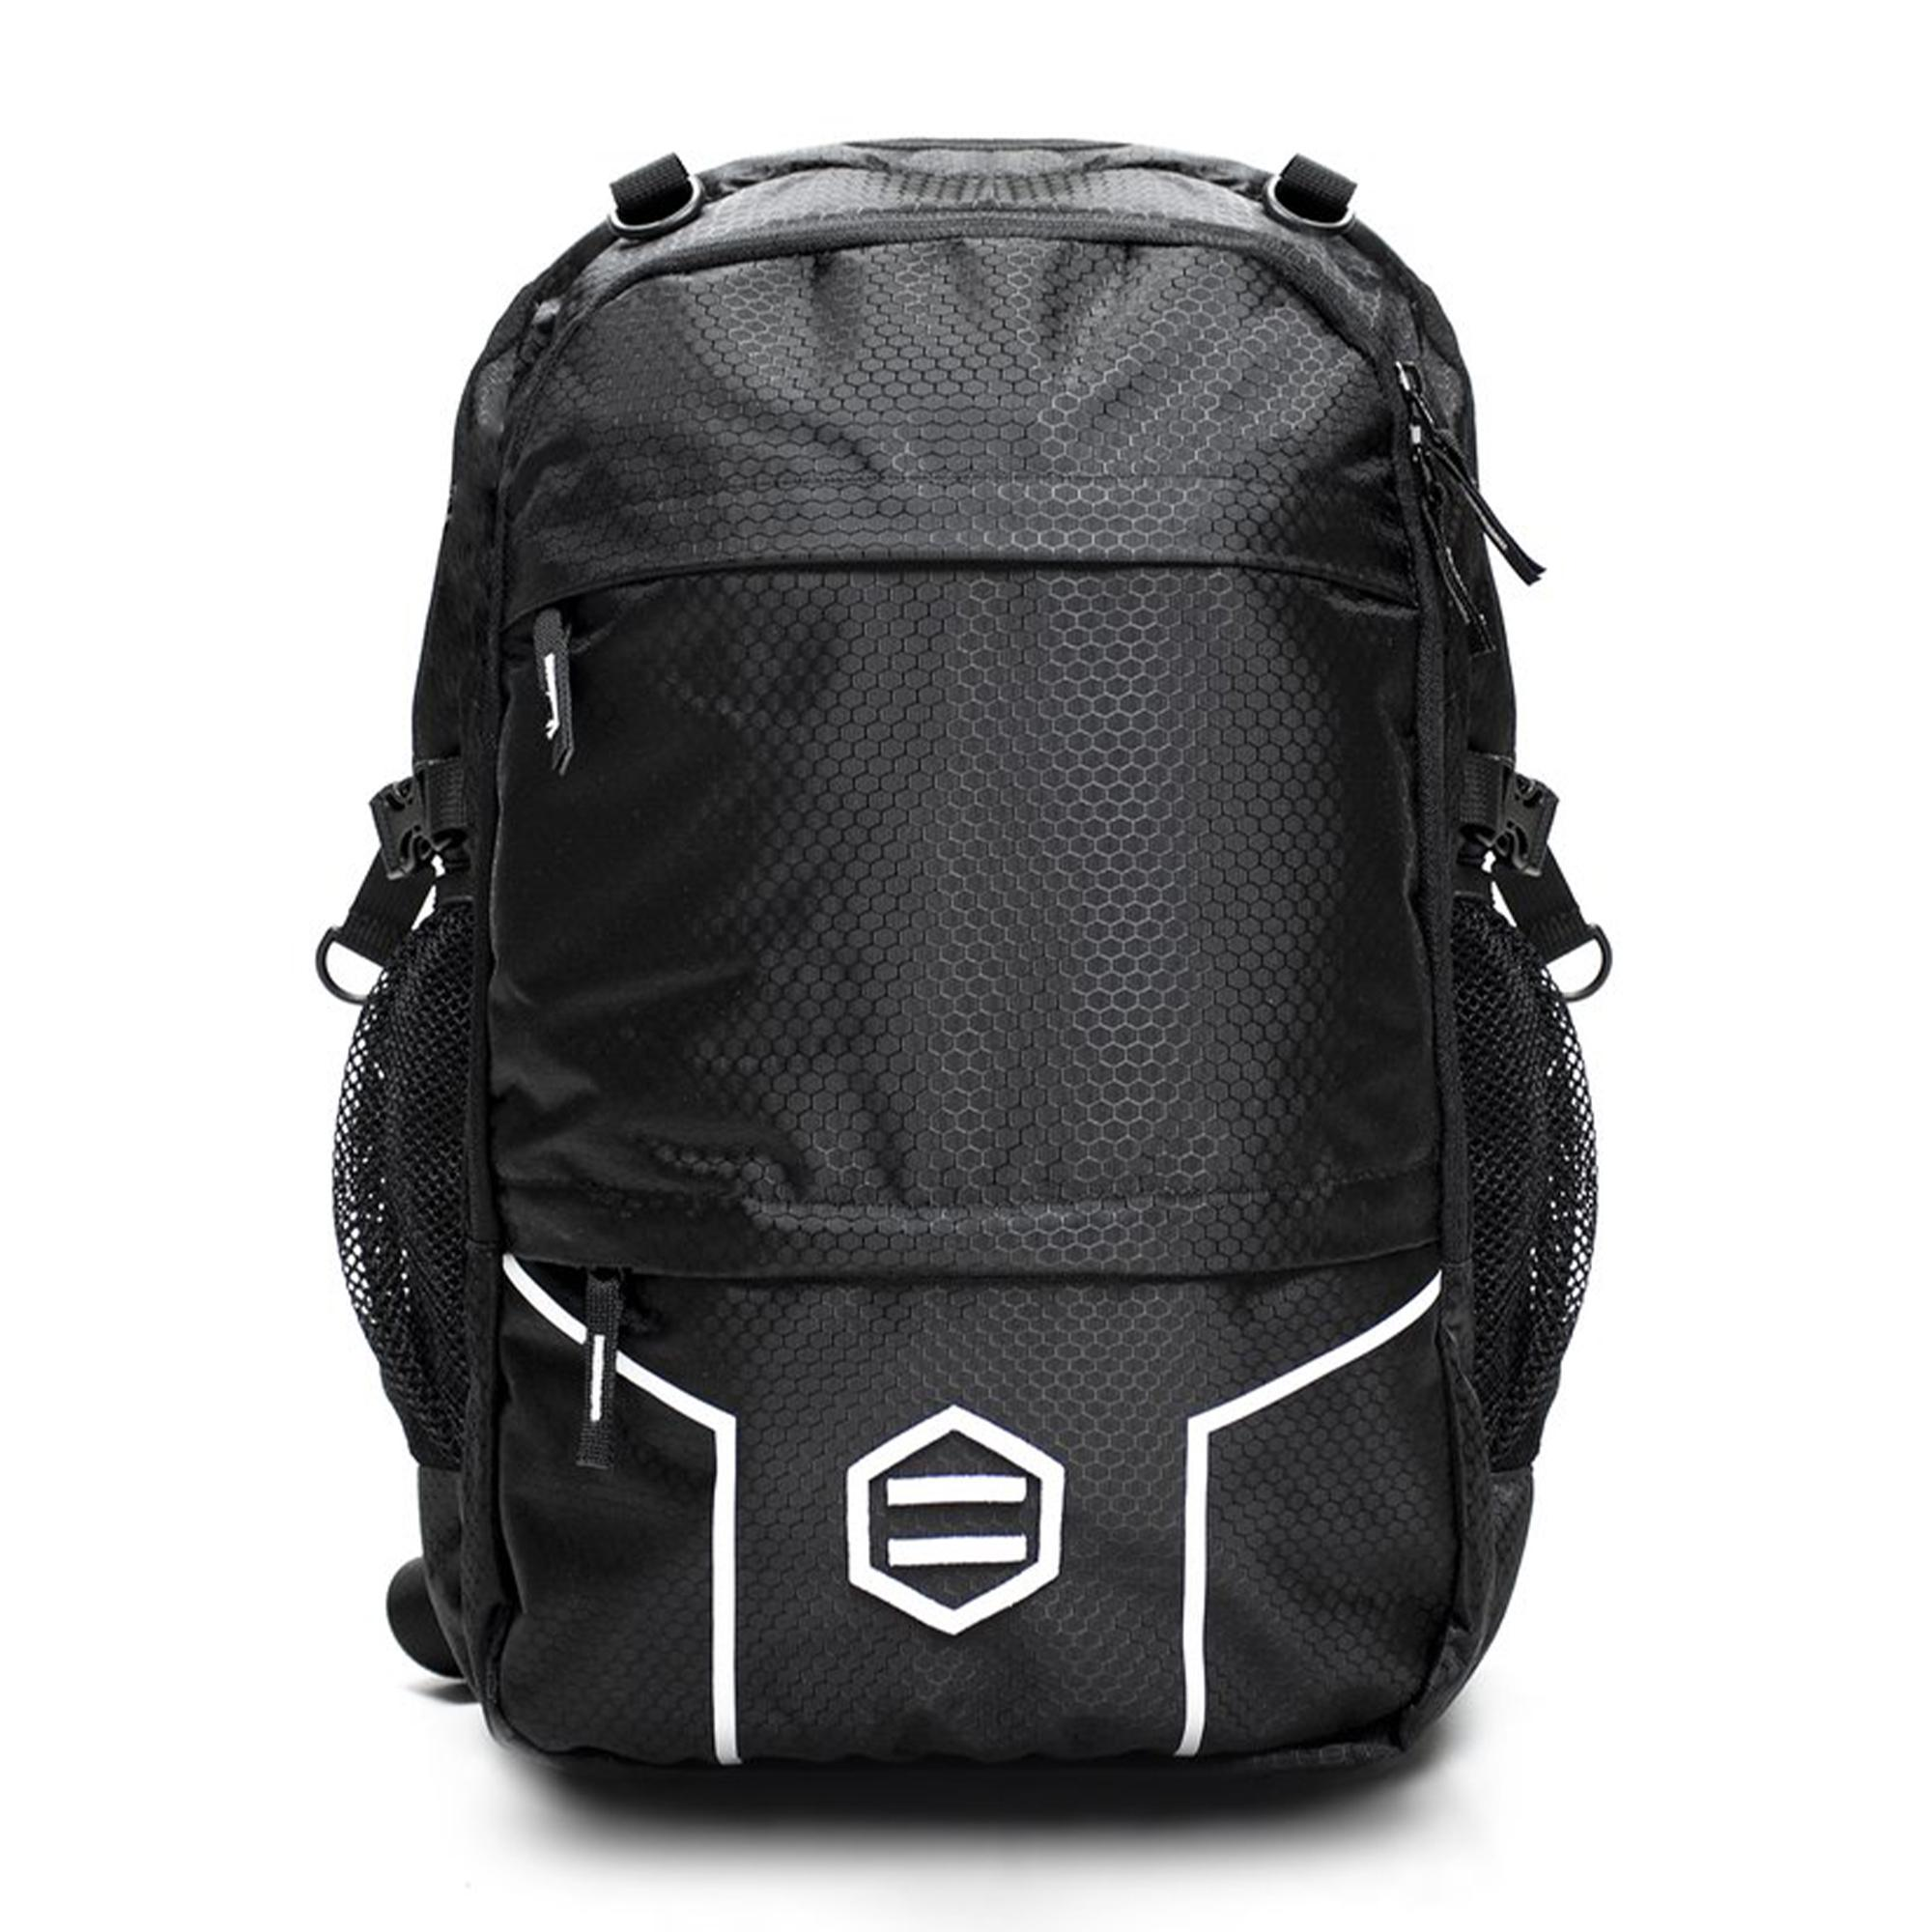 più amato 9cca9 9bd60 DOLLY NOIRE NEW POCKET BACKPACK